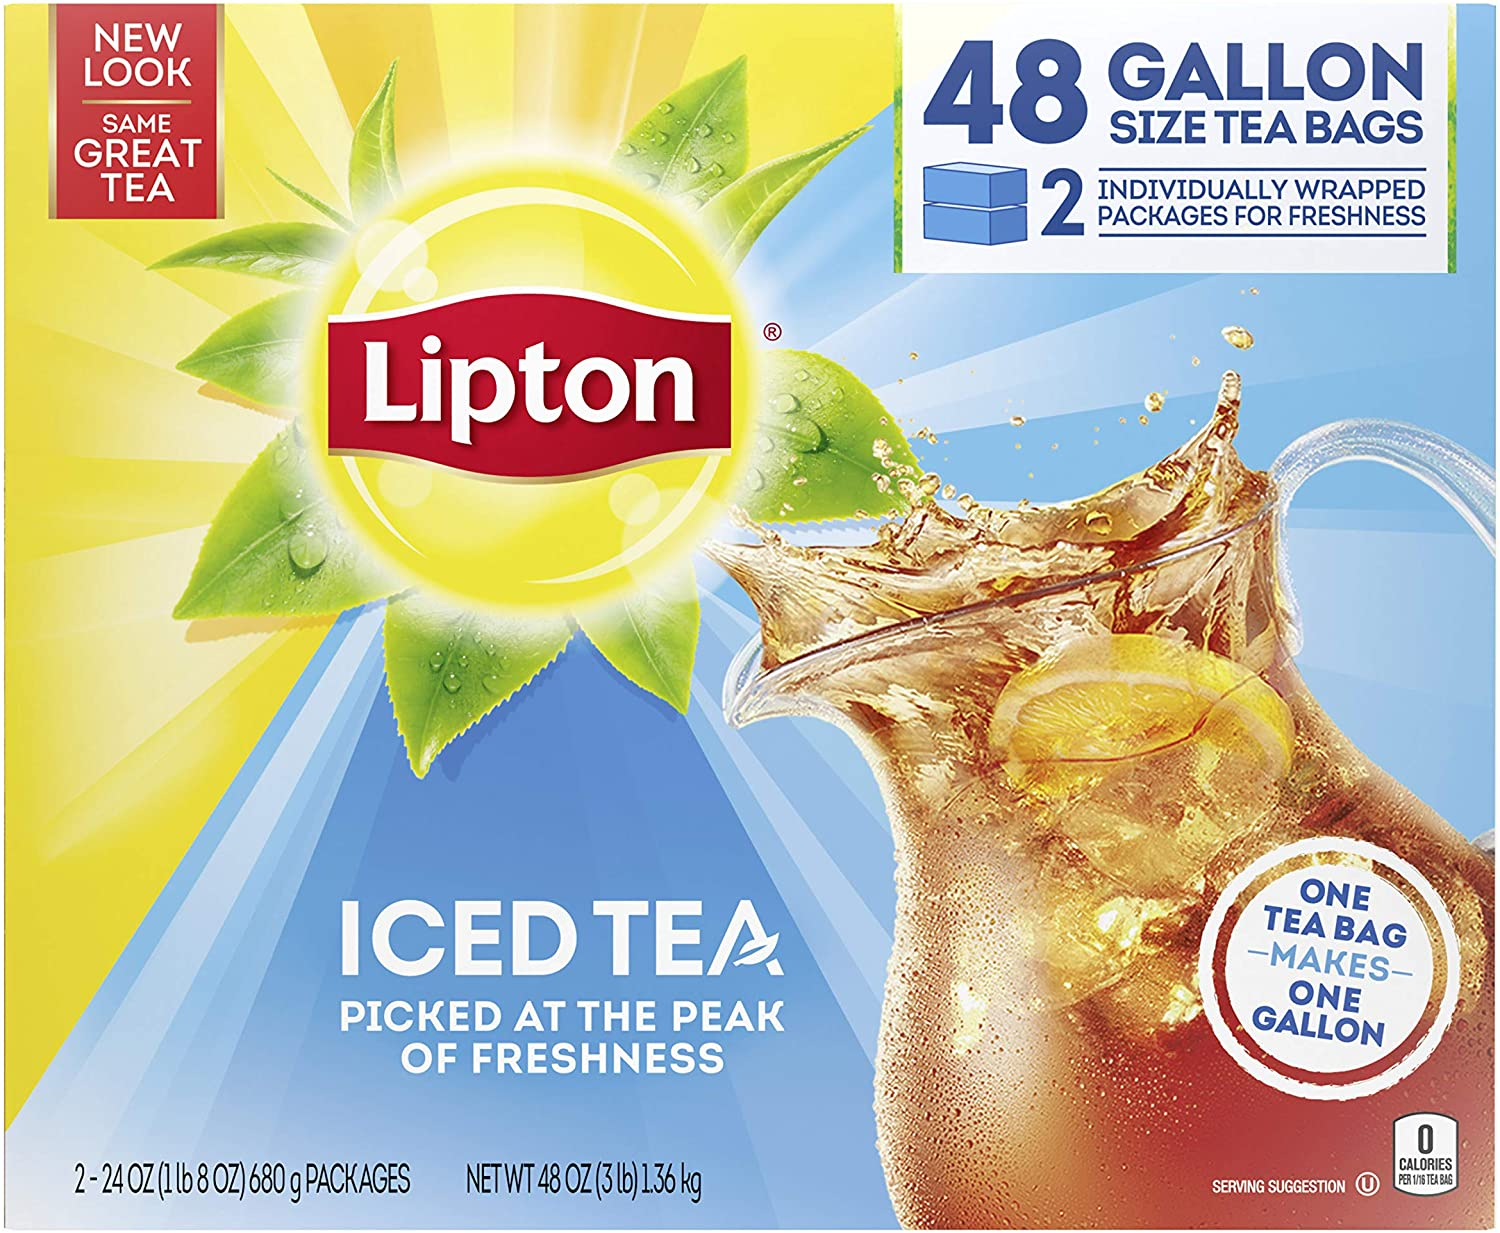 Lipton Gallon Sized Iced Tea Bags Picked At The Peak Of Freshness Unsweetened Can Help Support A Healthy Heart 48 Oz 48 Count Black Teas Grocery Gourmet Food